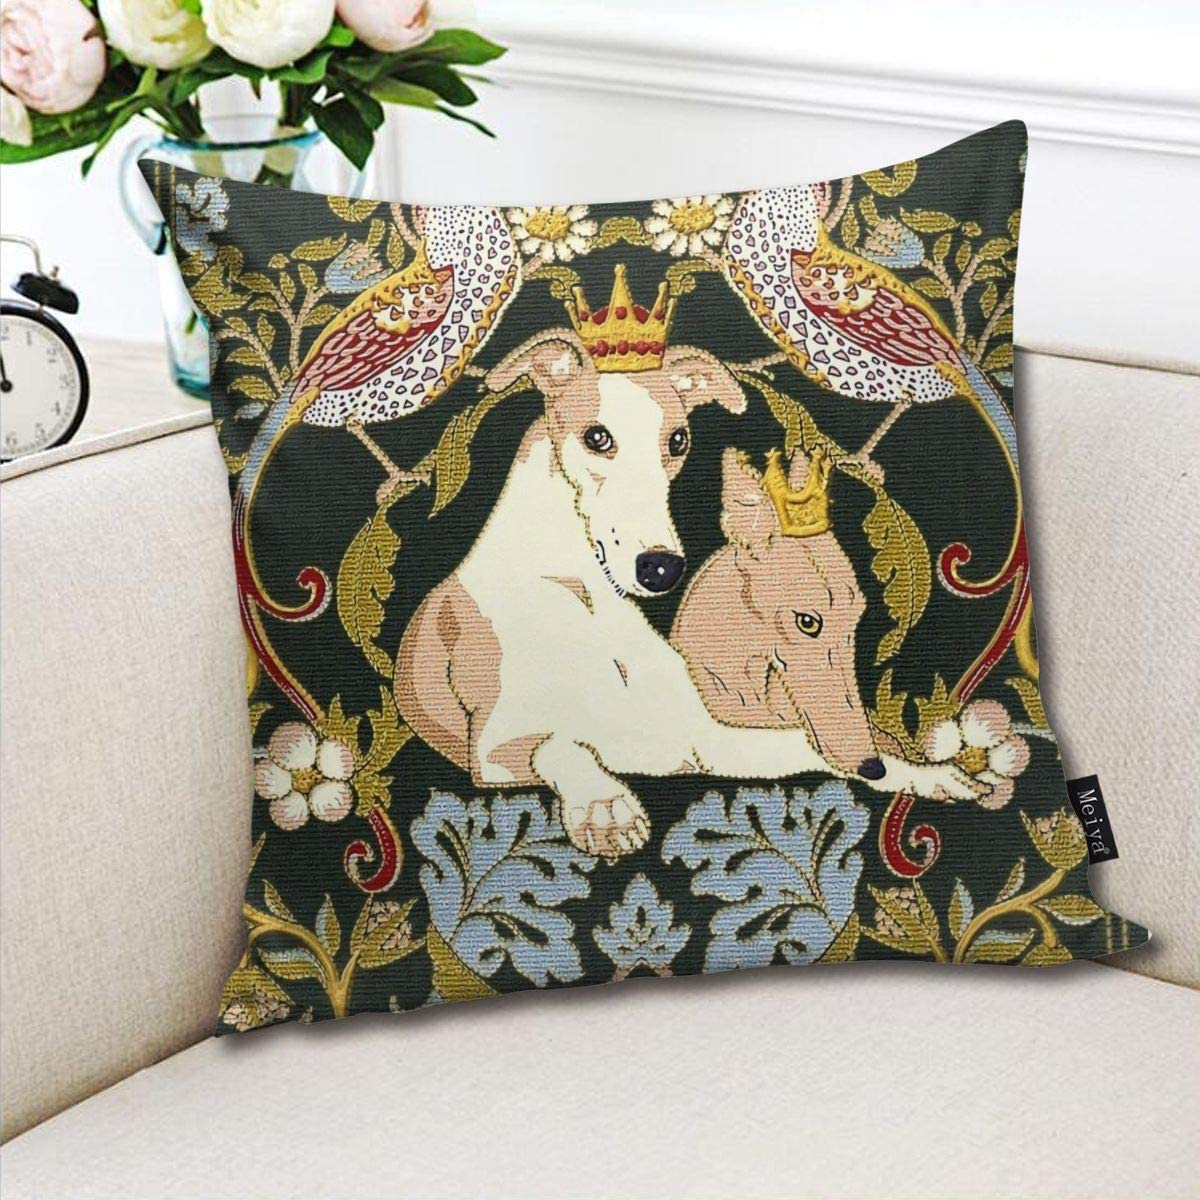 BLUETOP Whippets and Strawberry Thieves Pillow Cover 18 x 18 inch Winter Holiday Farmhouse Cotton Cushion Case Decoration for Sofa Couch